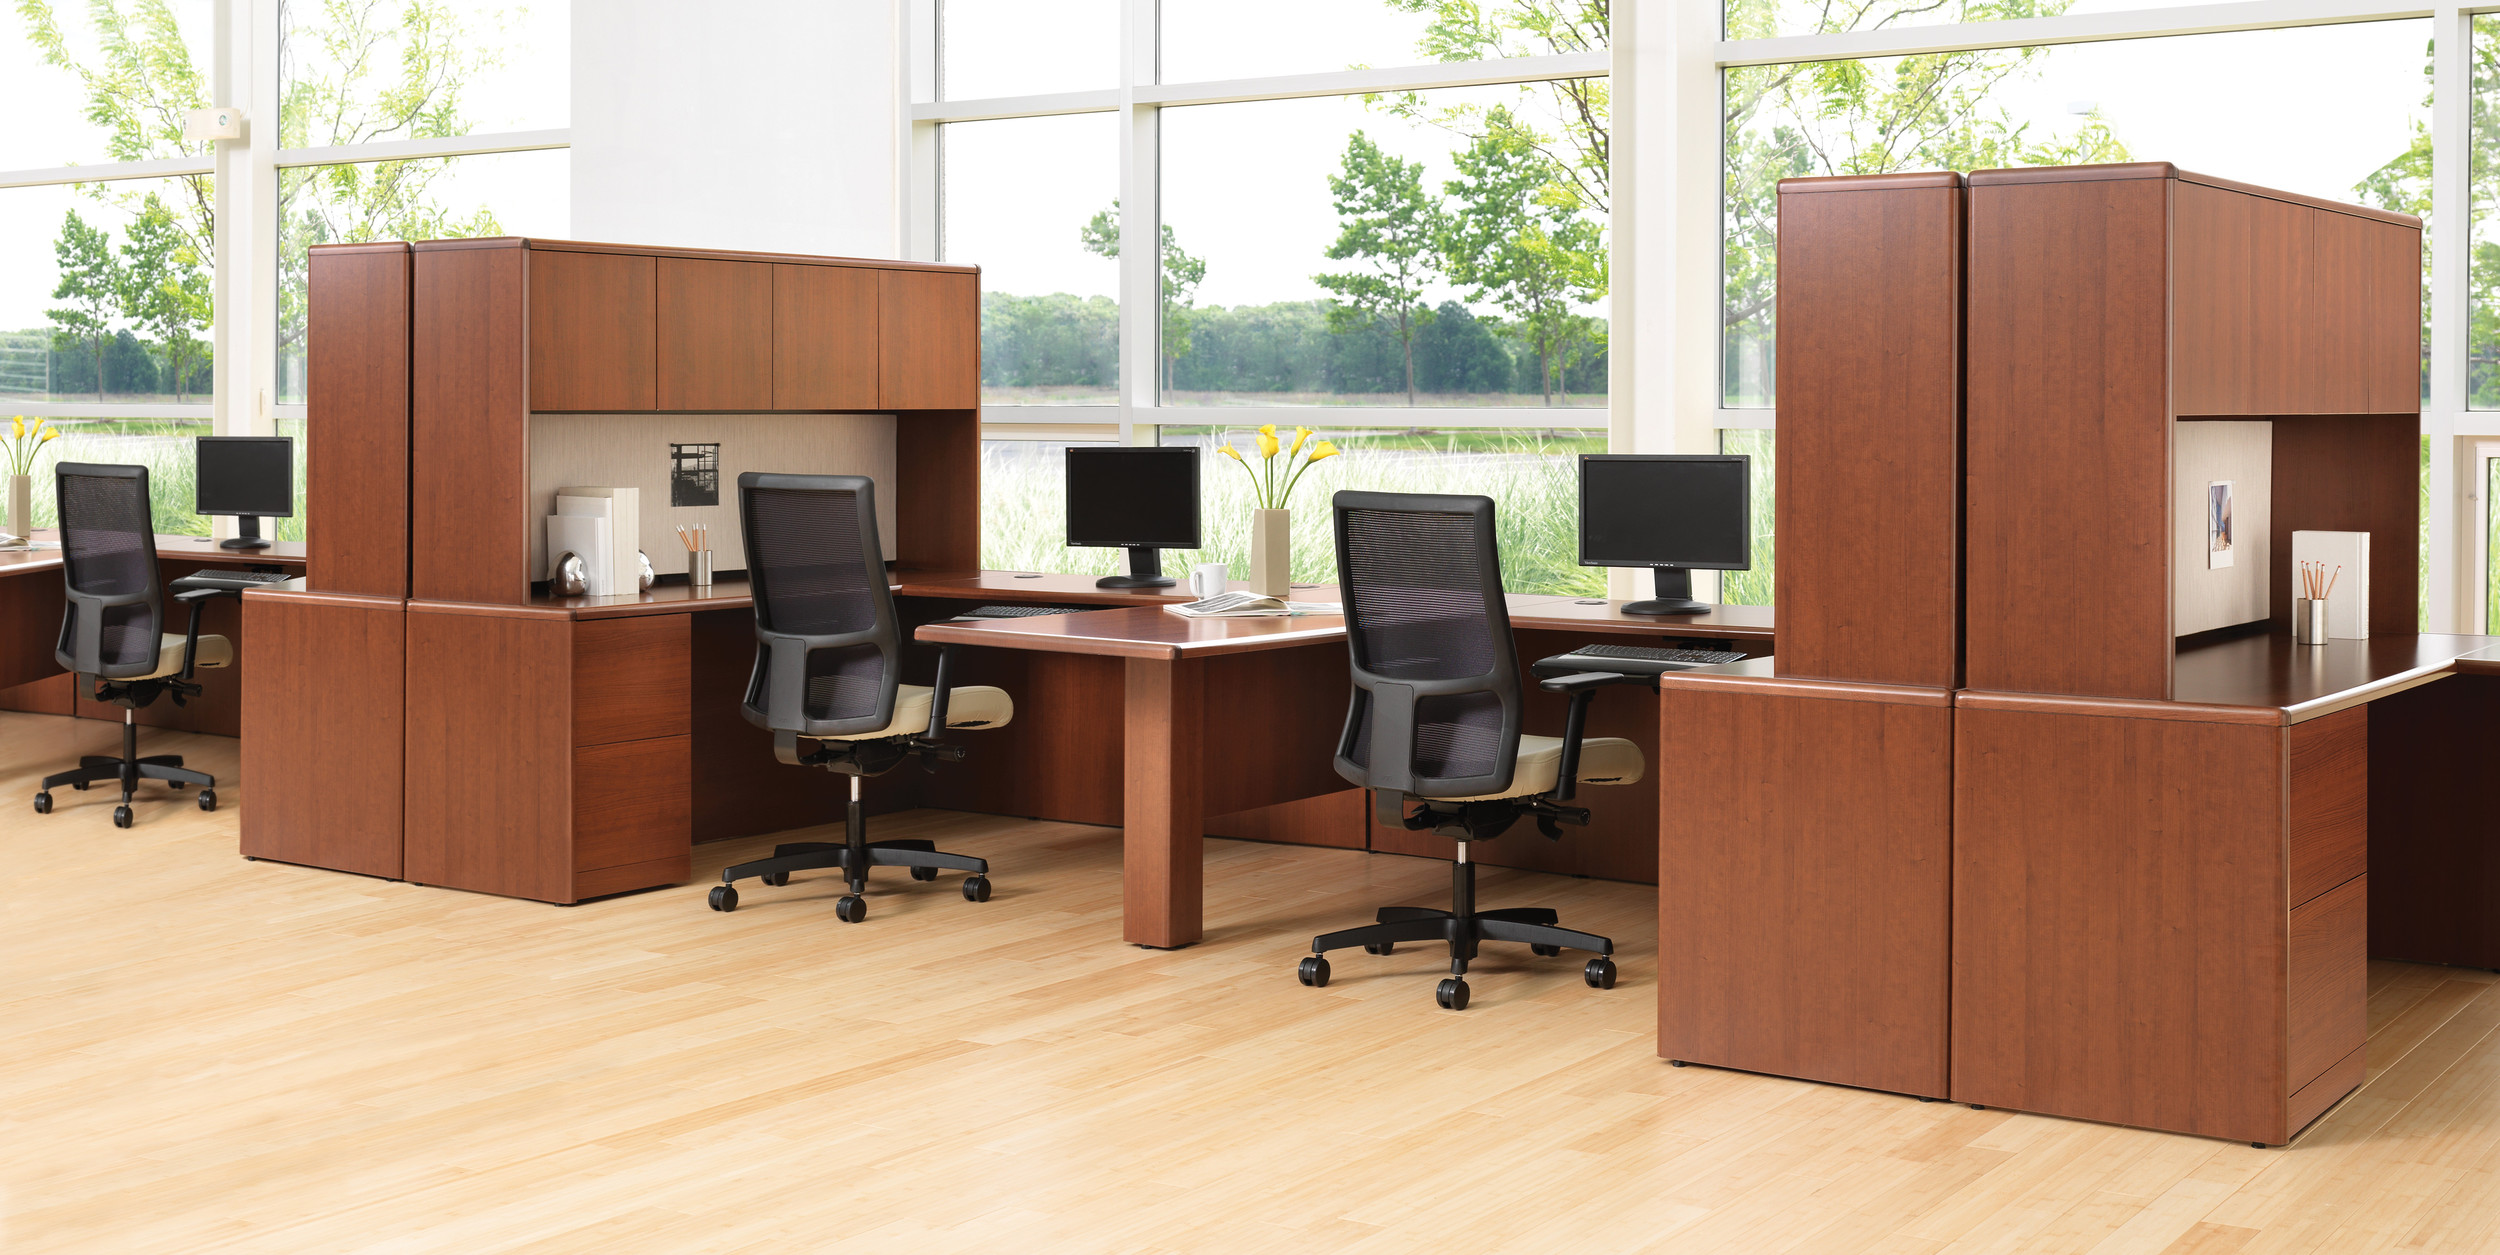 used office furniture store or modern office furniture rental